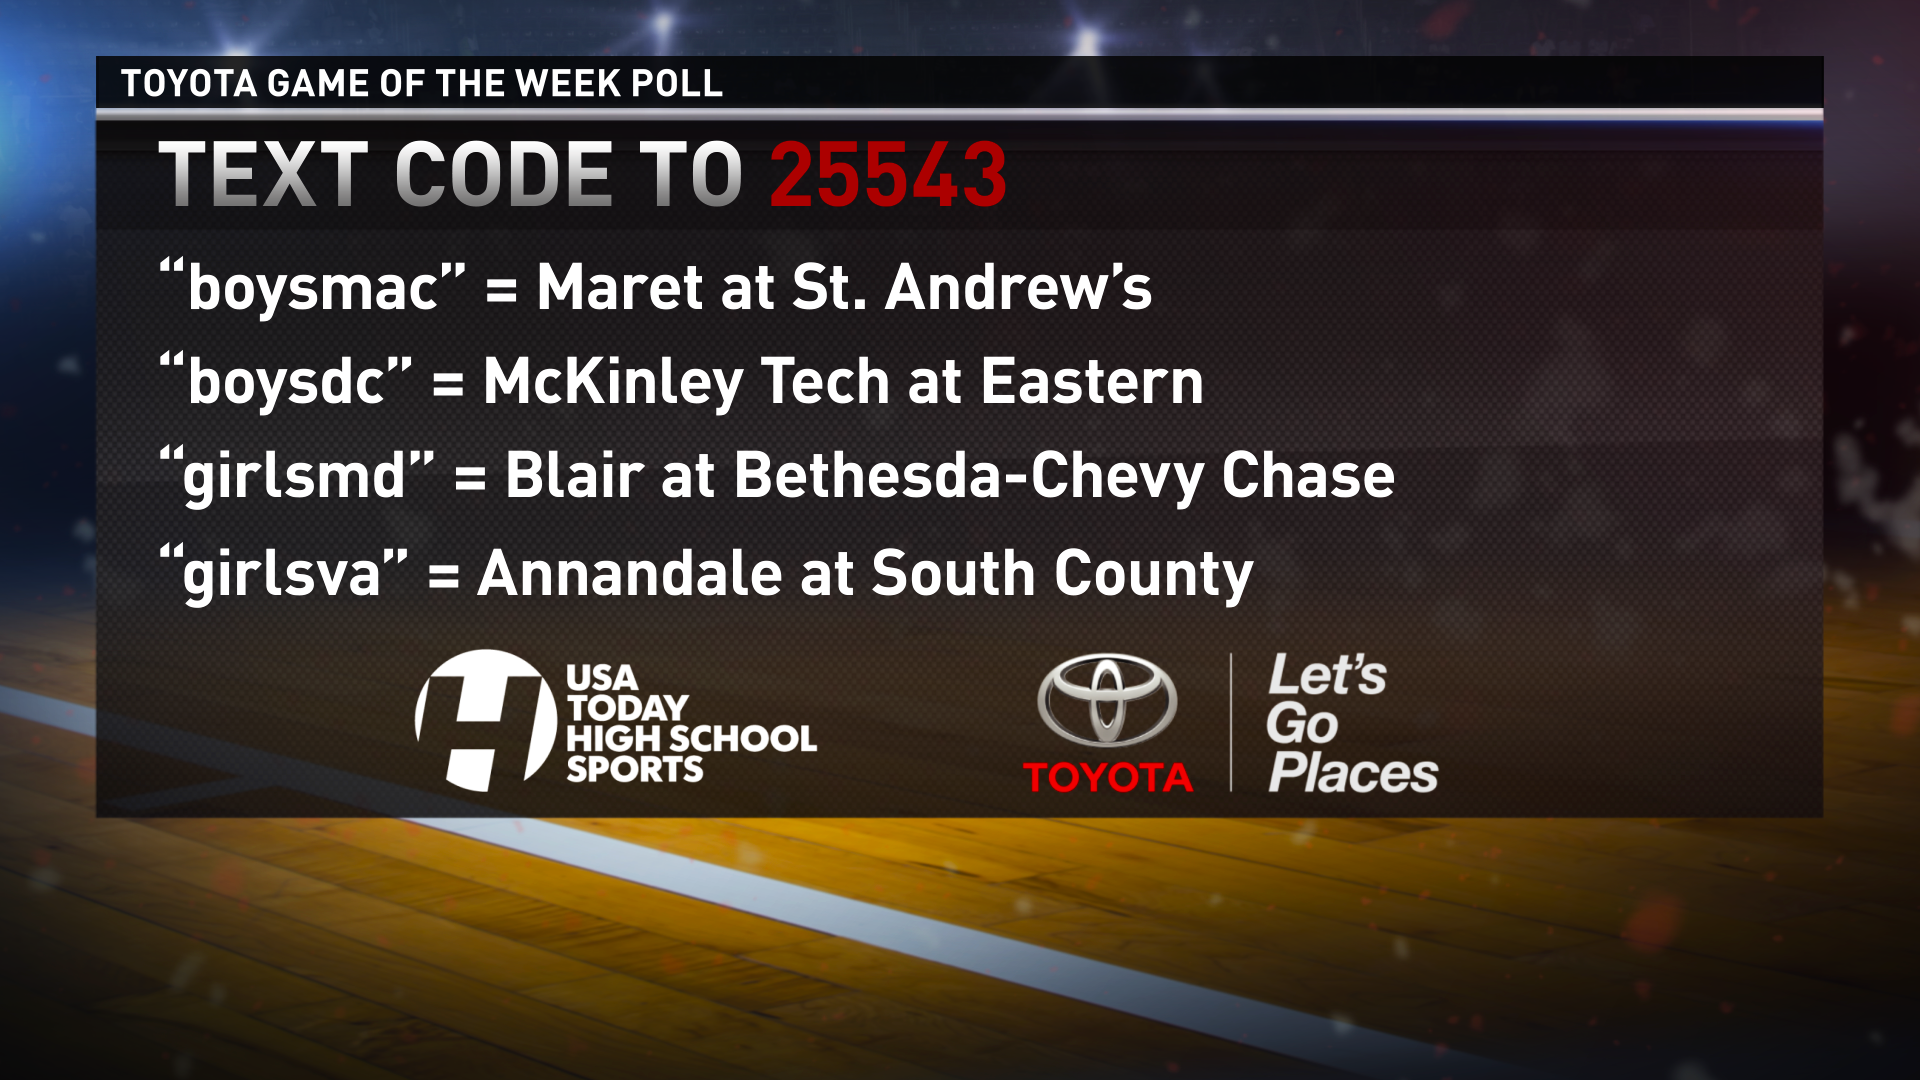 Which basketball matchup should be named Toyota Game of the Week for January 30, 2015.